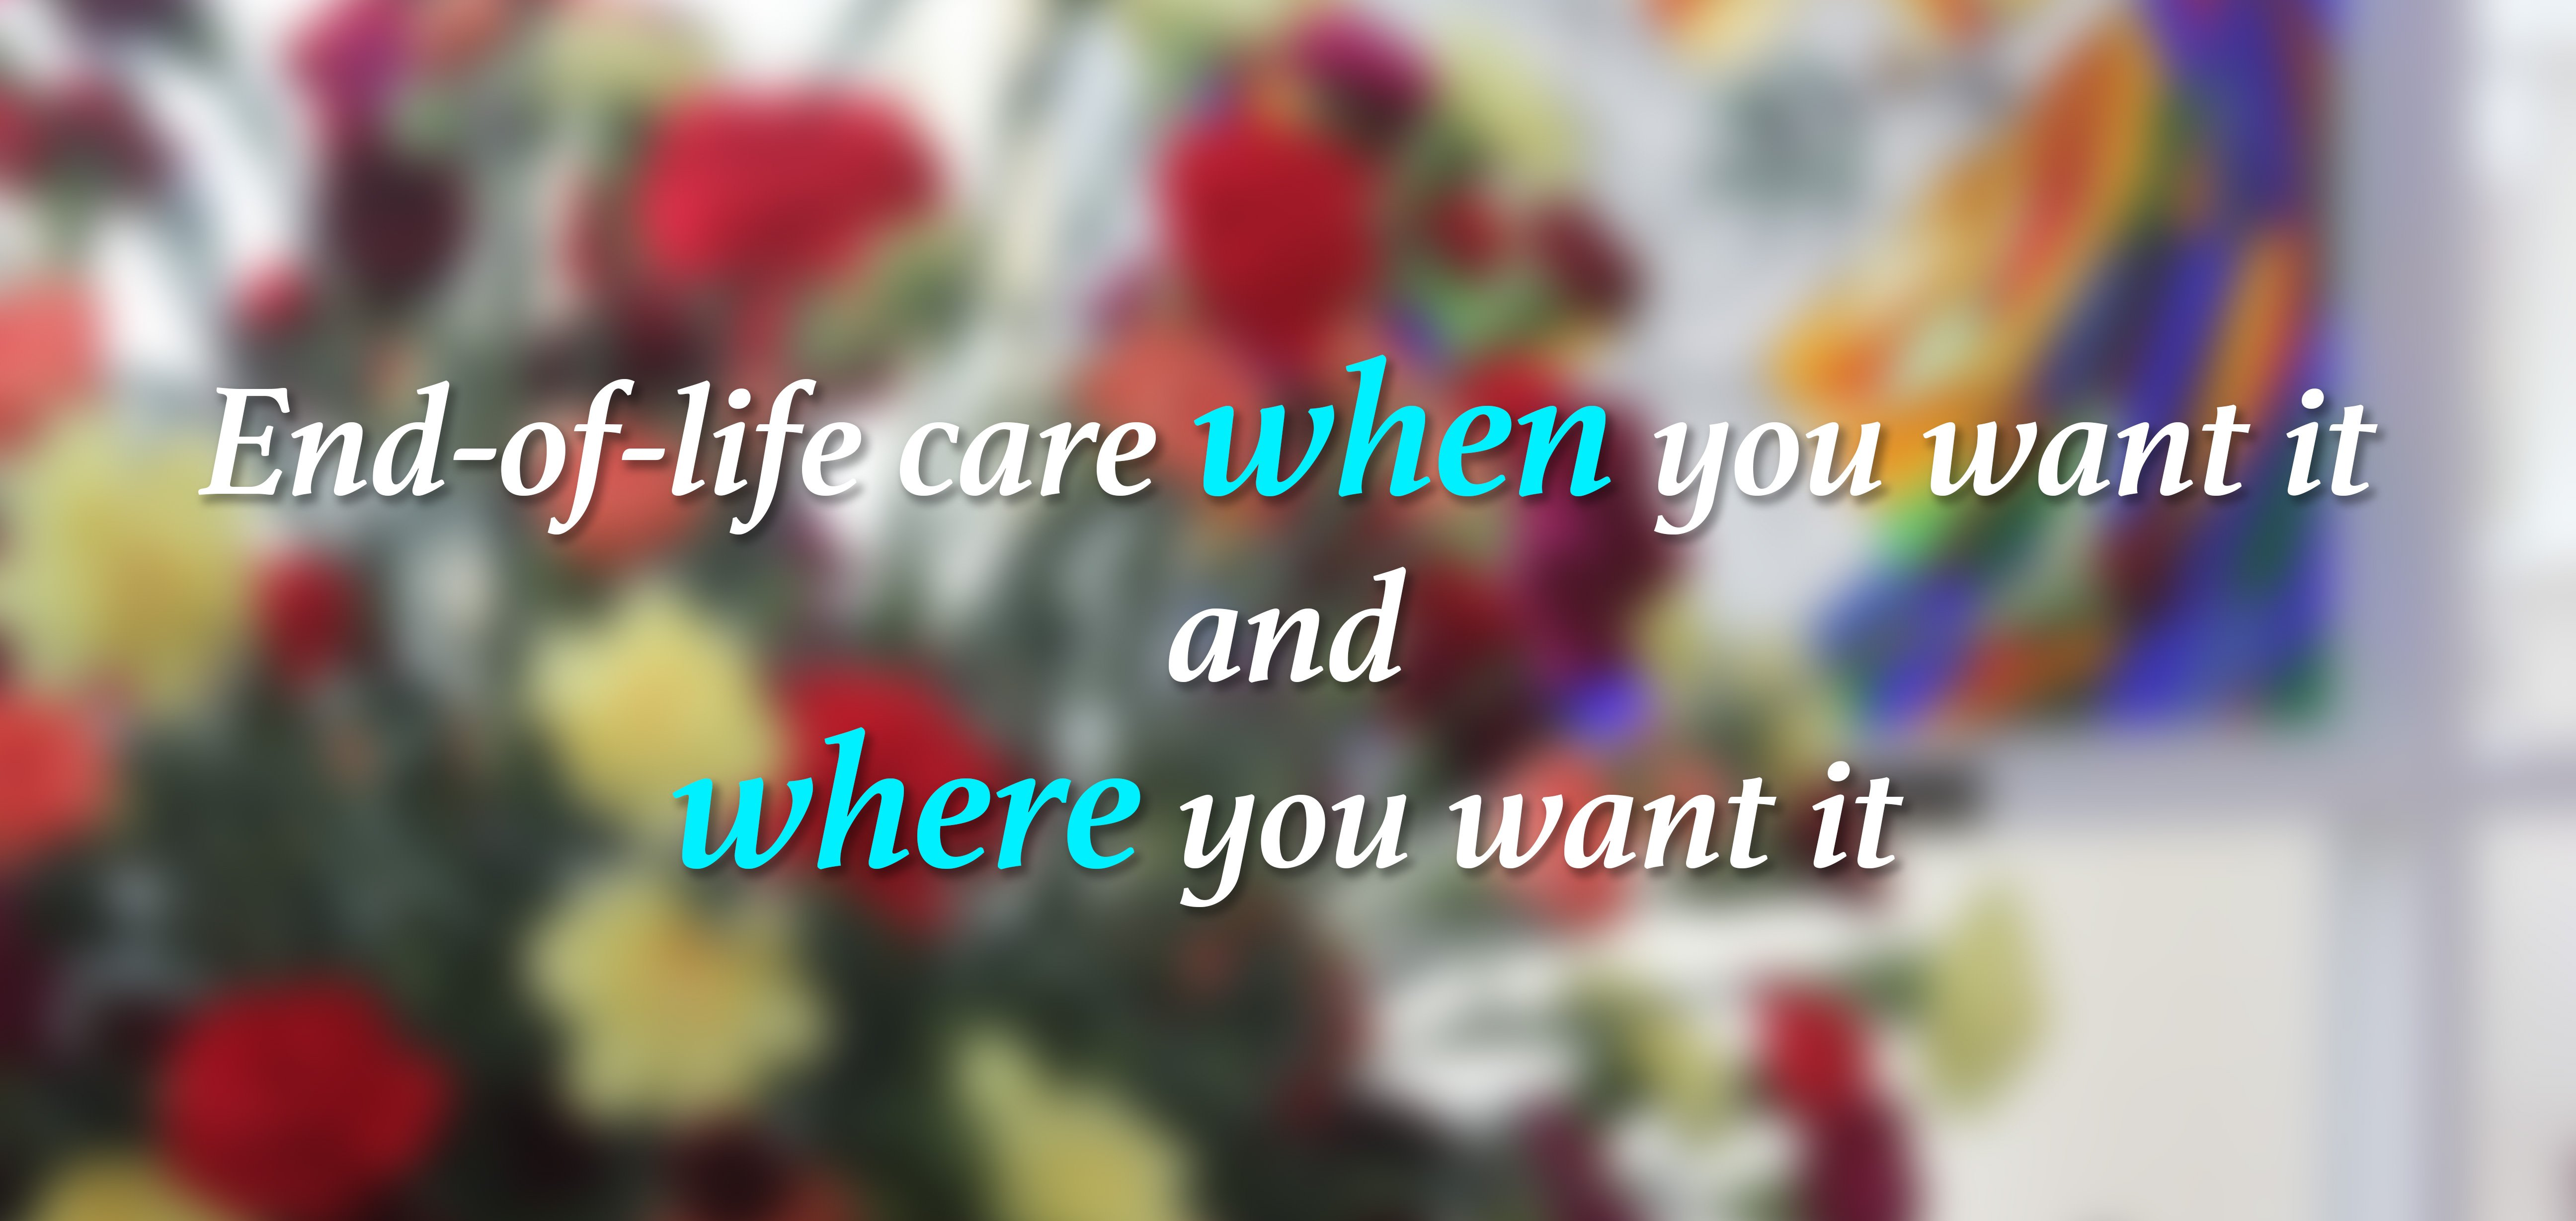 End-of-life care when you want it and where you want it.